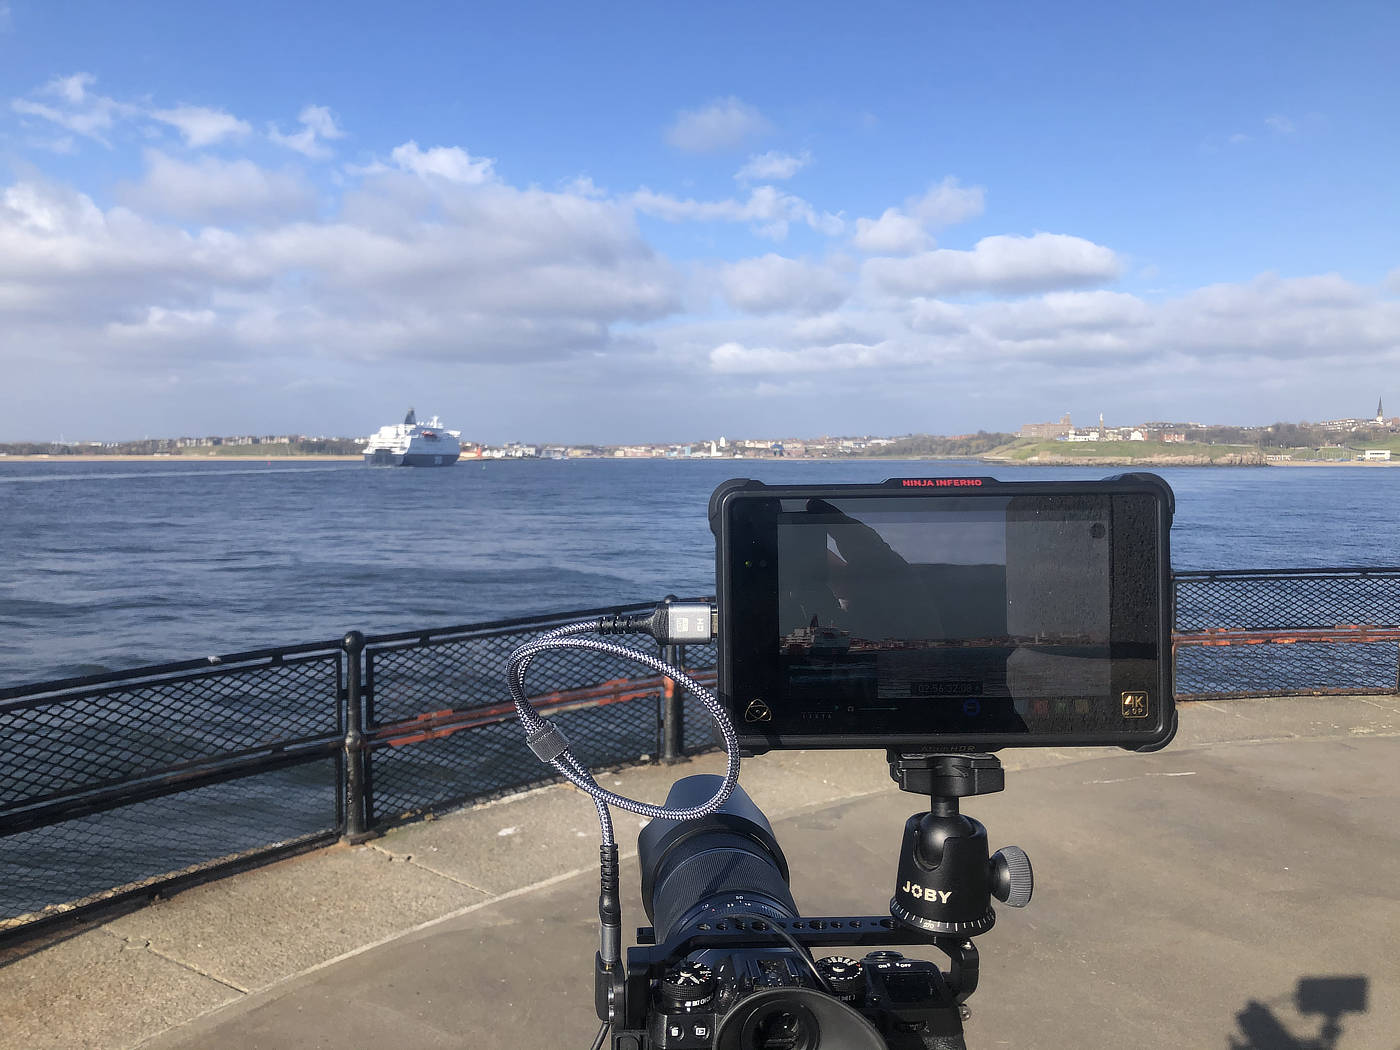 Filming the DFDS Amsterdam Ferry heading to North Shields from the mouth of the River Tyne.